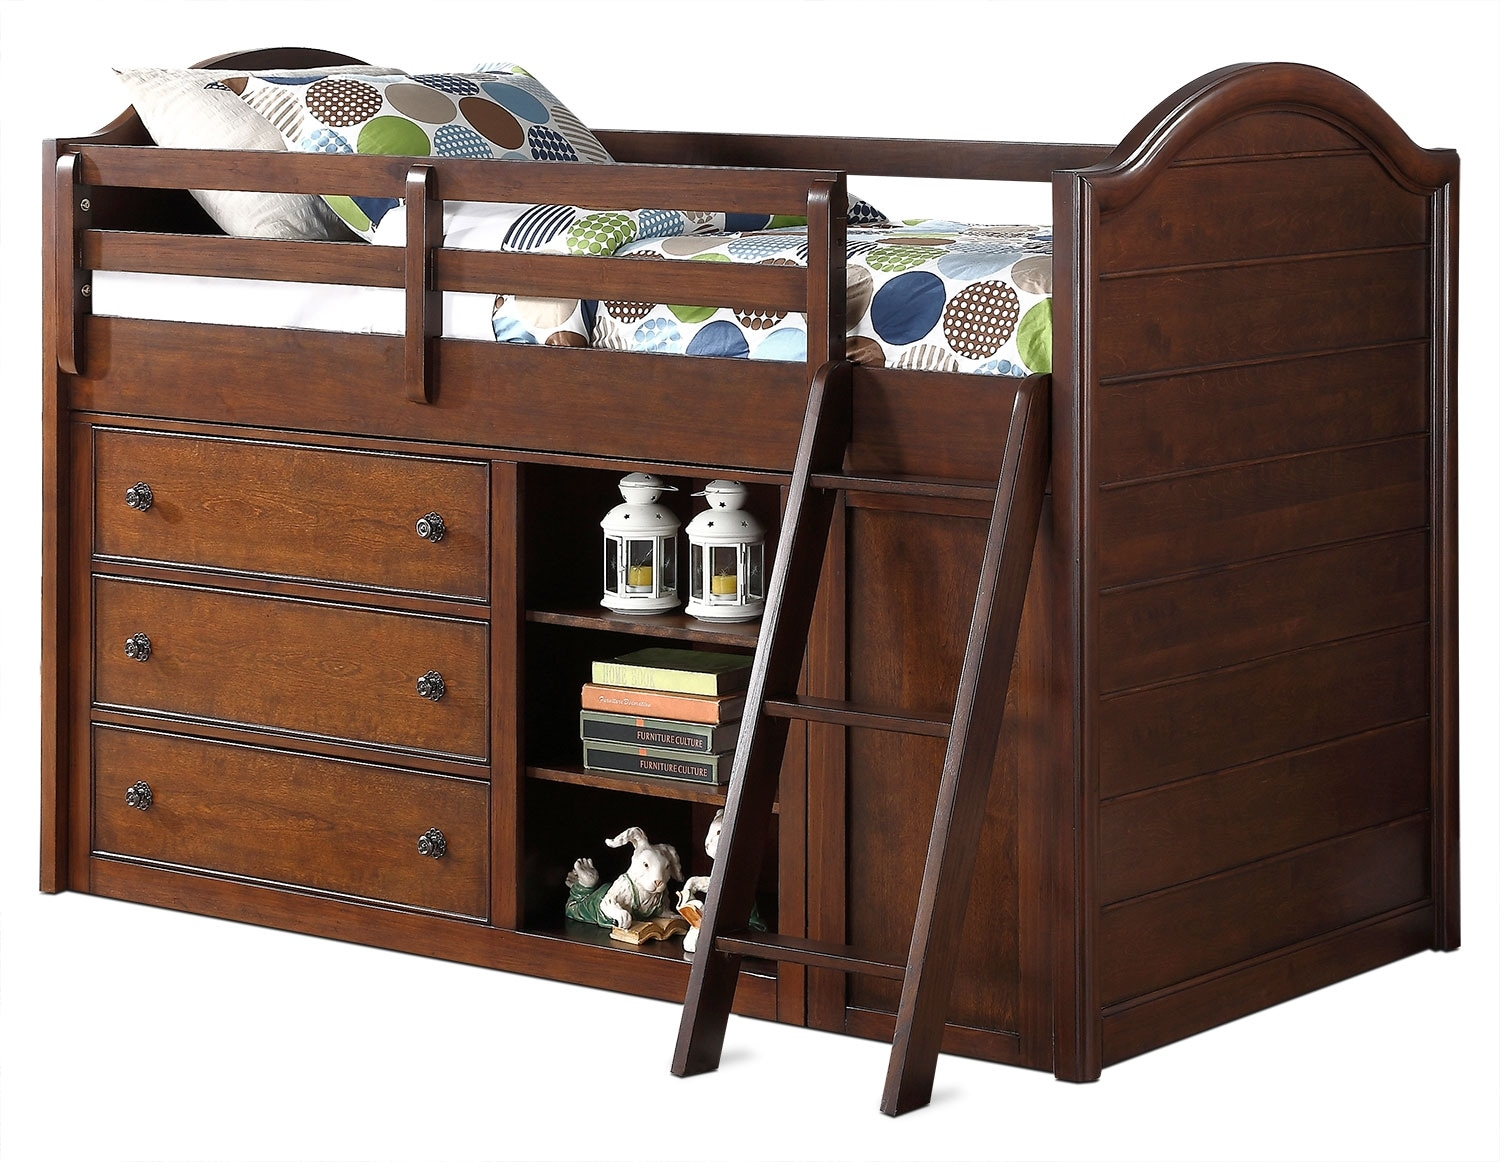 Chris Twin Loft Bed - Cherry